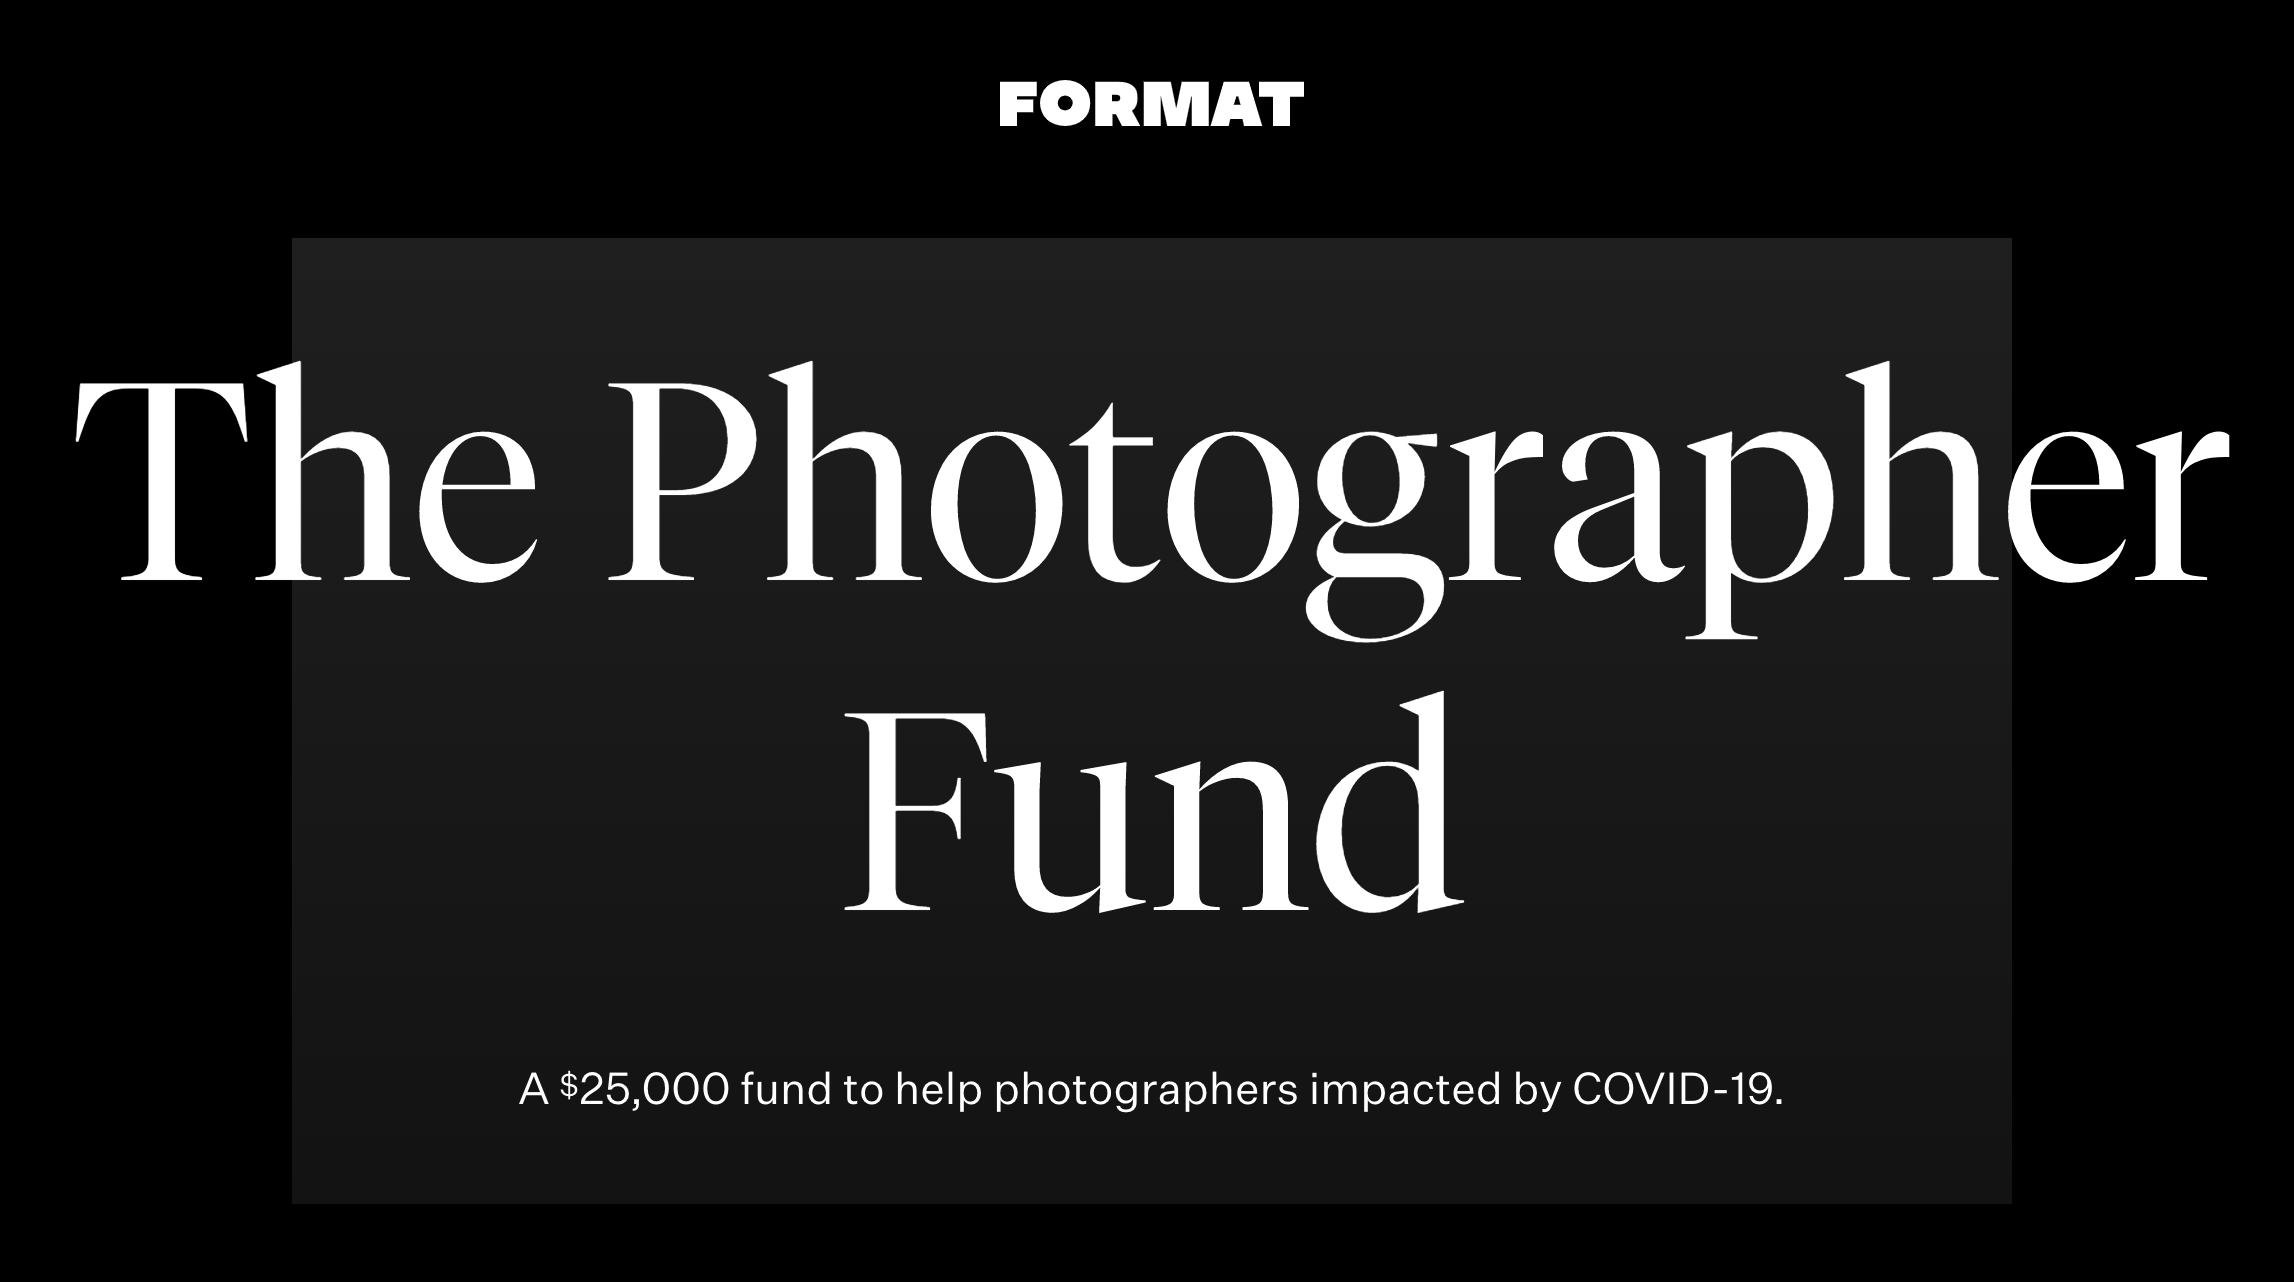 Format Offers $25,000 to Photographers Impacted By COVID-19